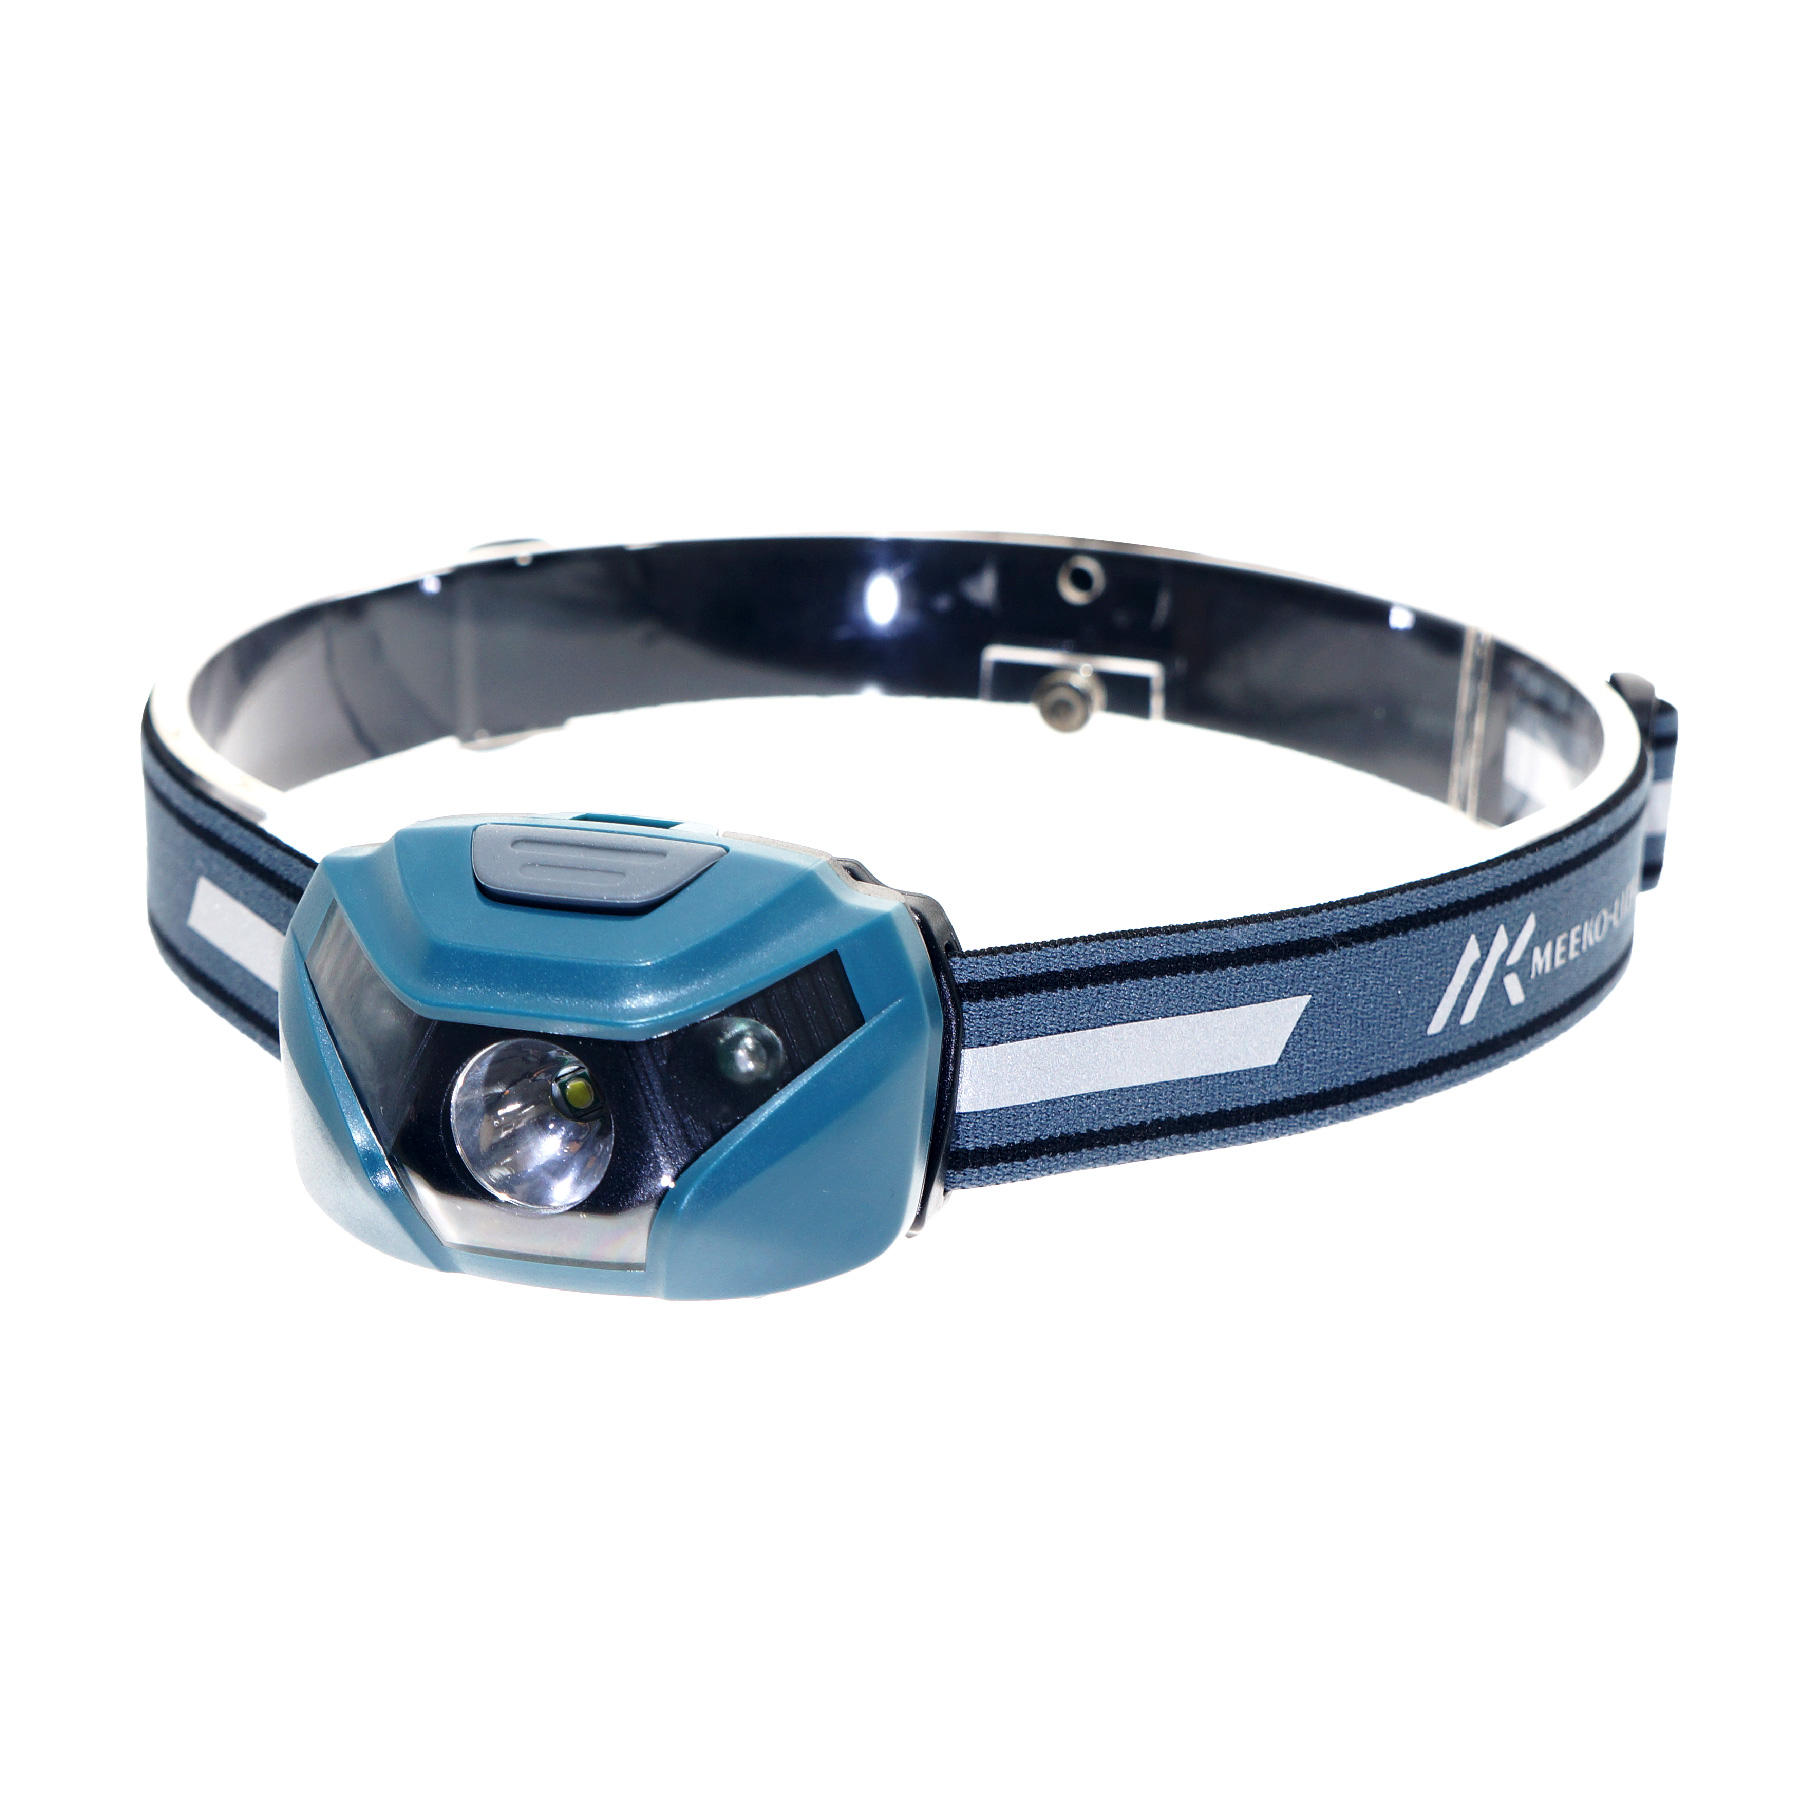 Head Light 3AAA Battery Plastic Headlamp With Red Light